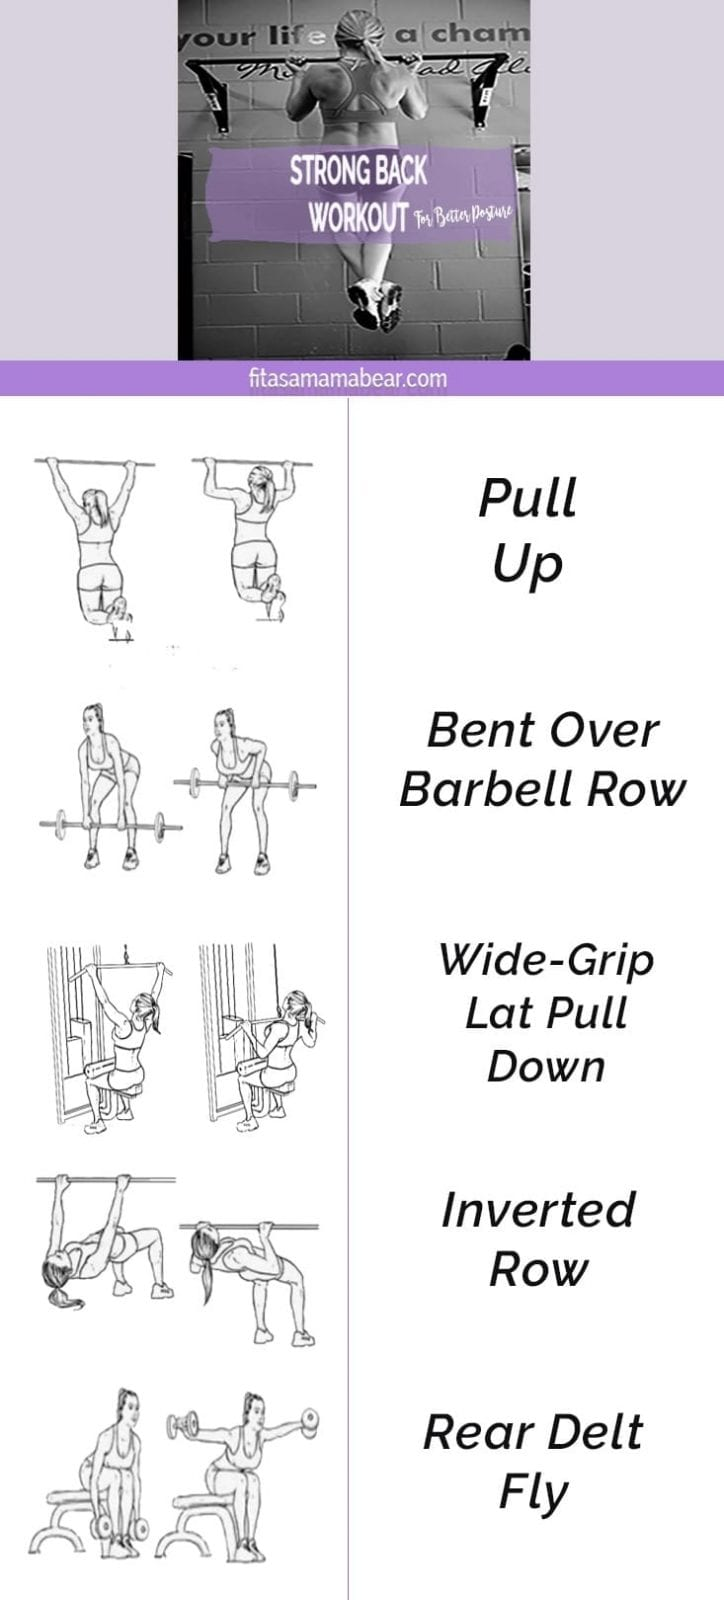 Workout to improve back strength. Training, exercise, strength, fat loss, fitness, activity, busy moms, tone, define, lean.